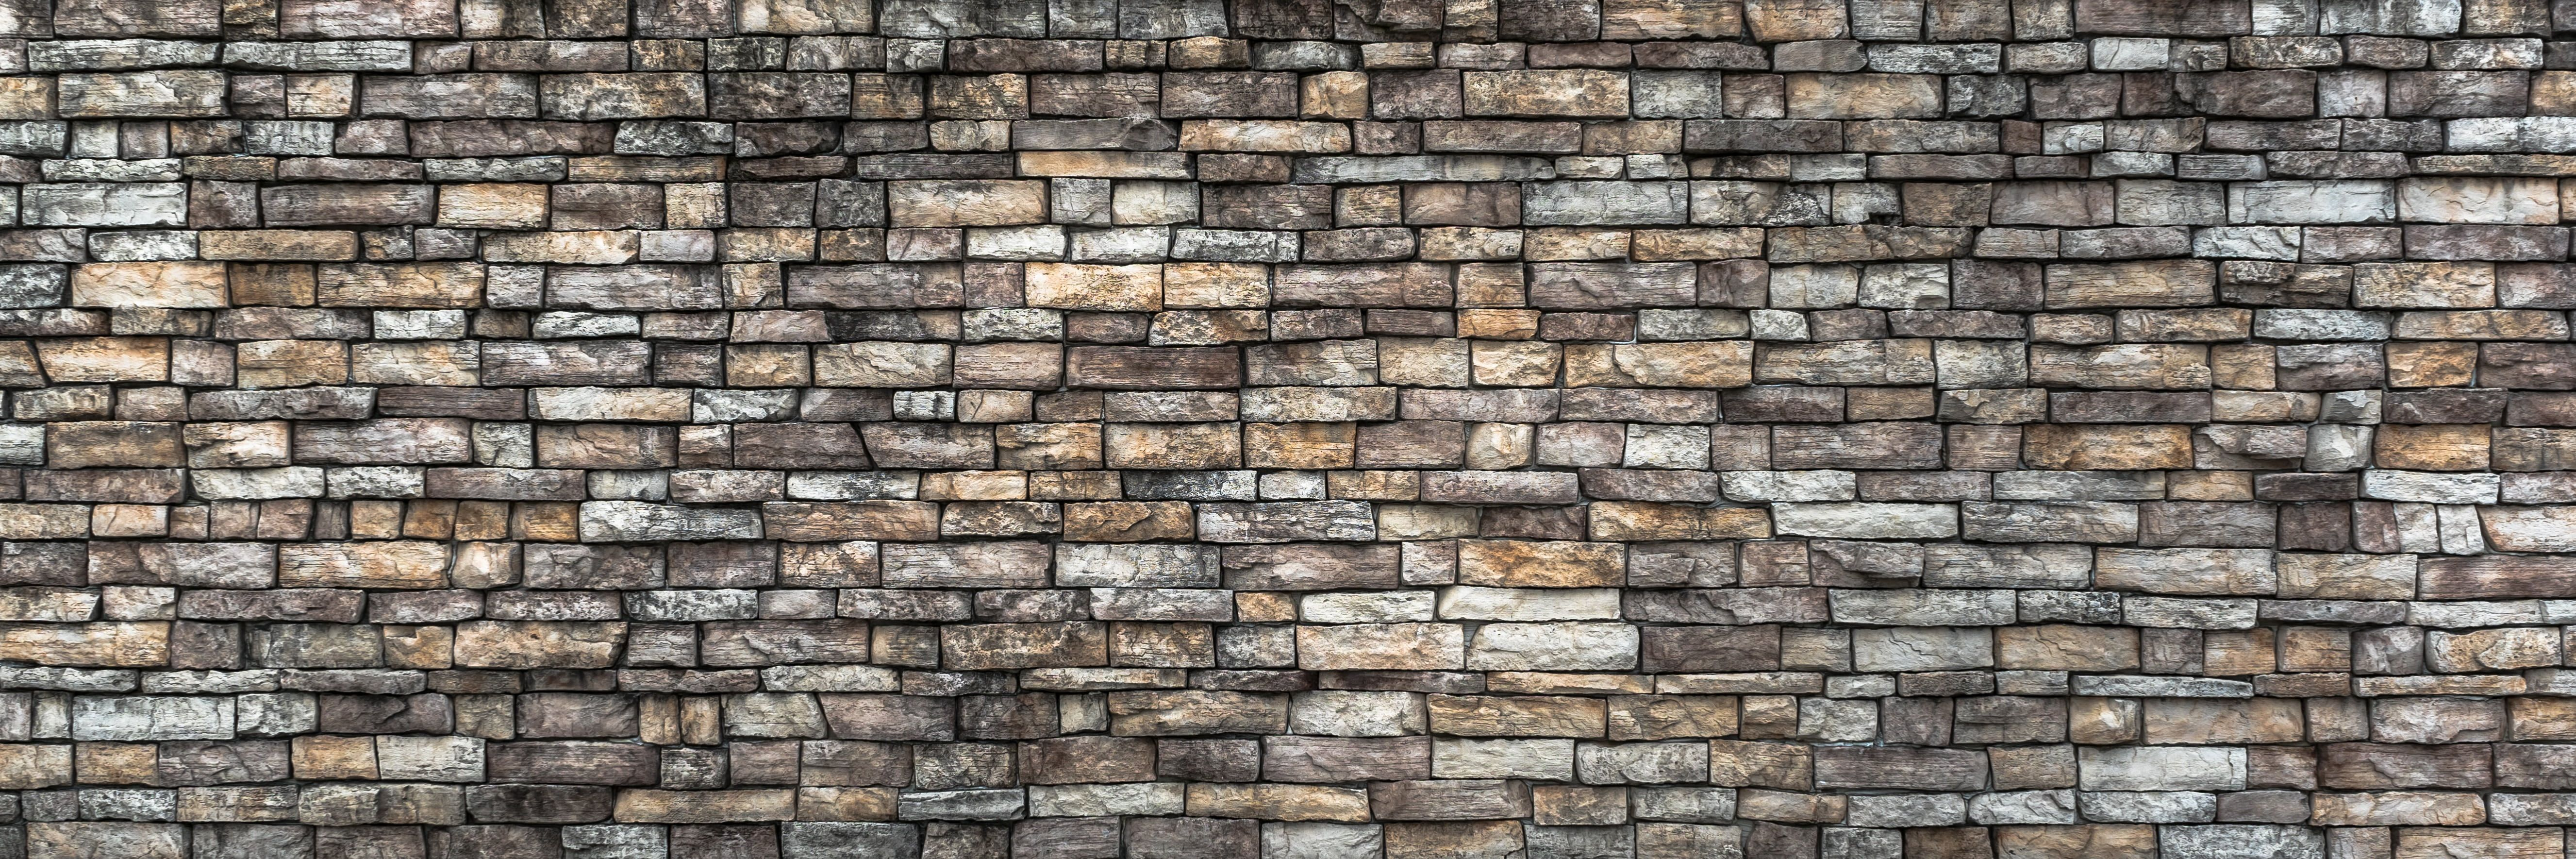 White And Brown Ceramic Bricks Wall Damme Stone Wall Pattern Texture Grey Background Stone Construction Brick Bloc Stone Wall Wallpaper Wall Patterns